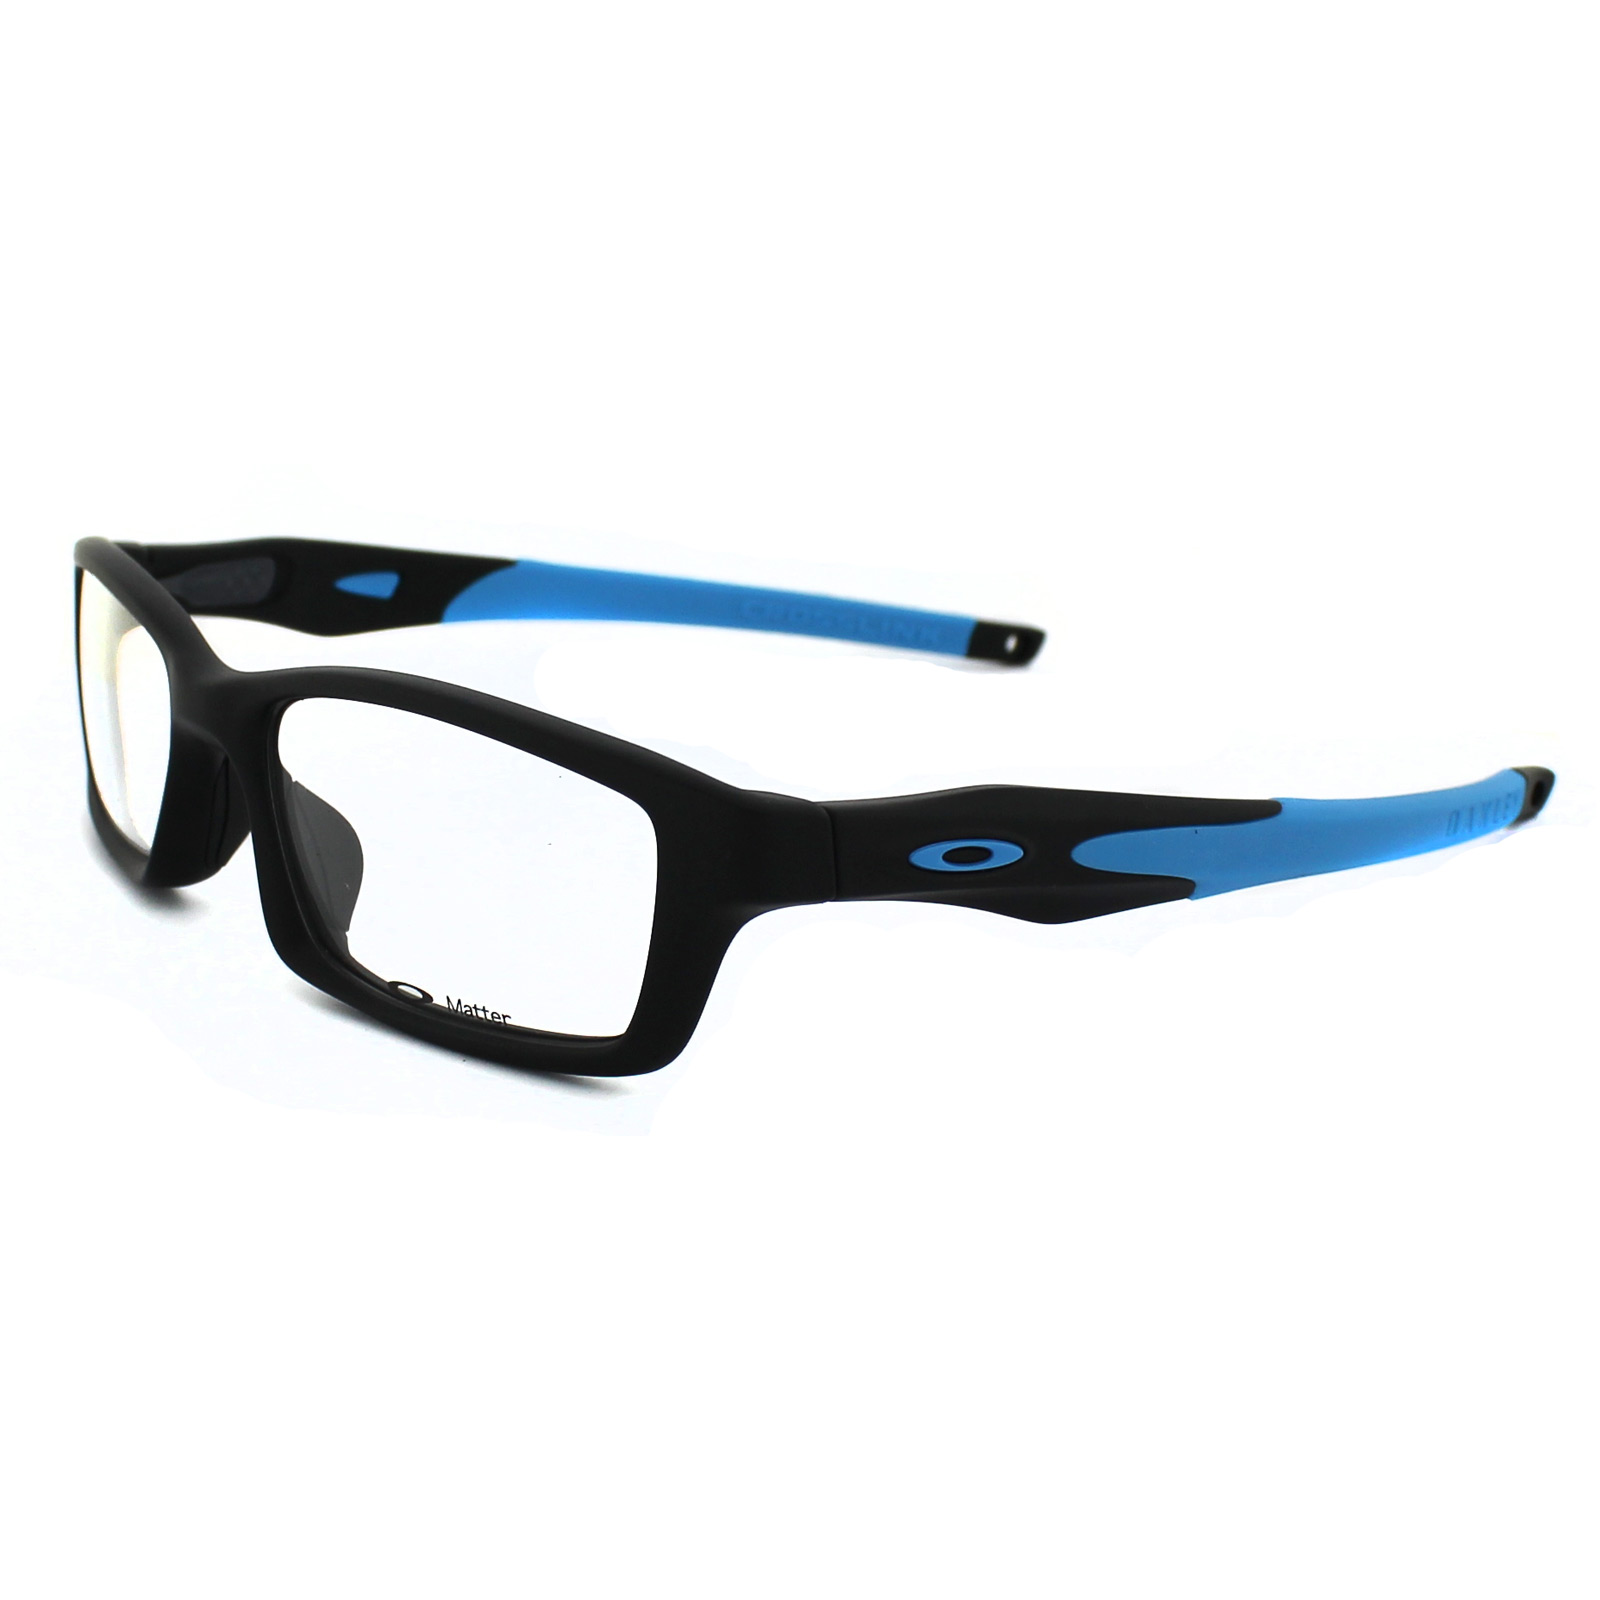 Big Frame Oakley Glasses : Oakley Glasses Frames Crosslink 8027-01 Satin Black & Sky ...